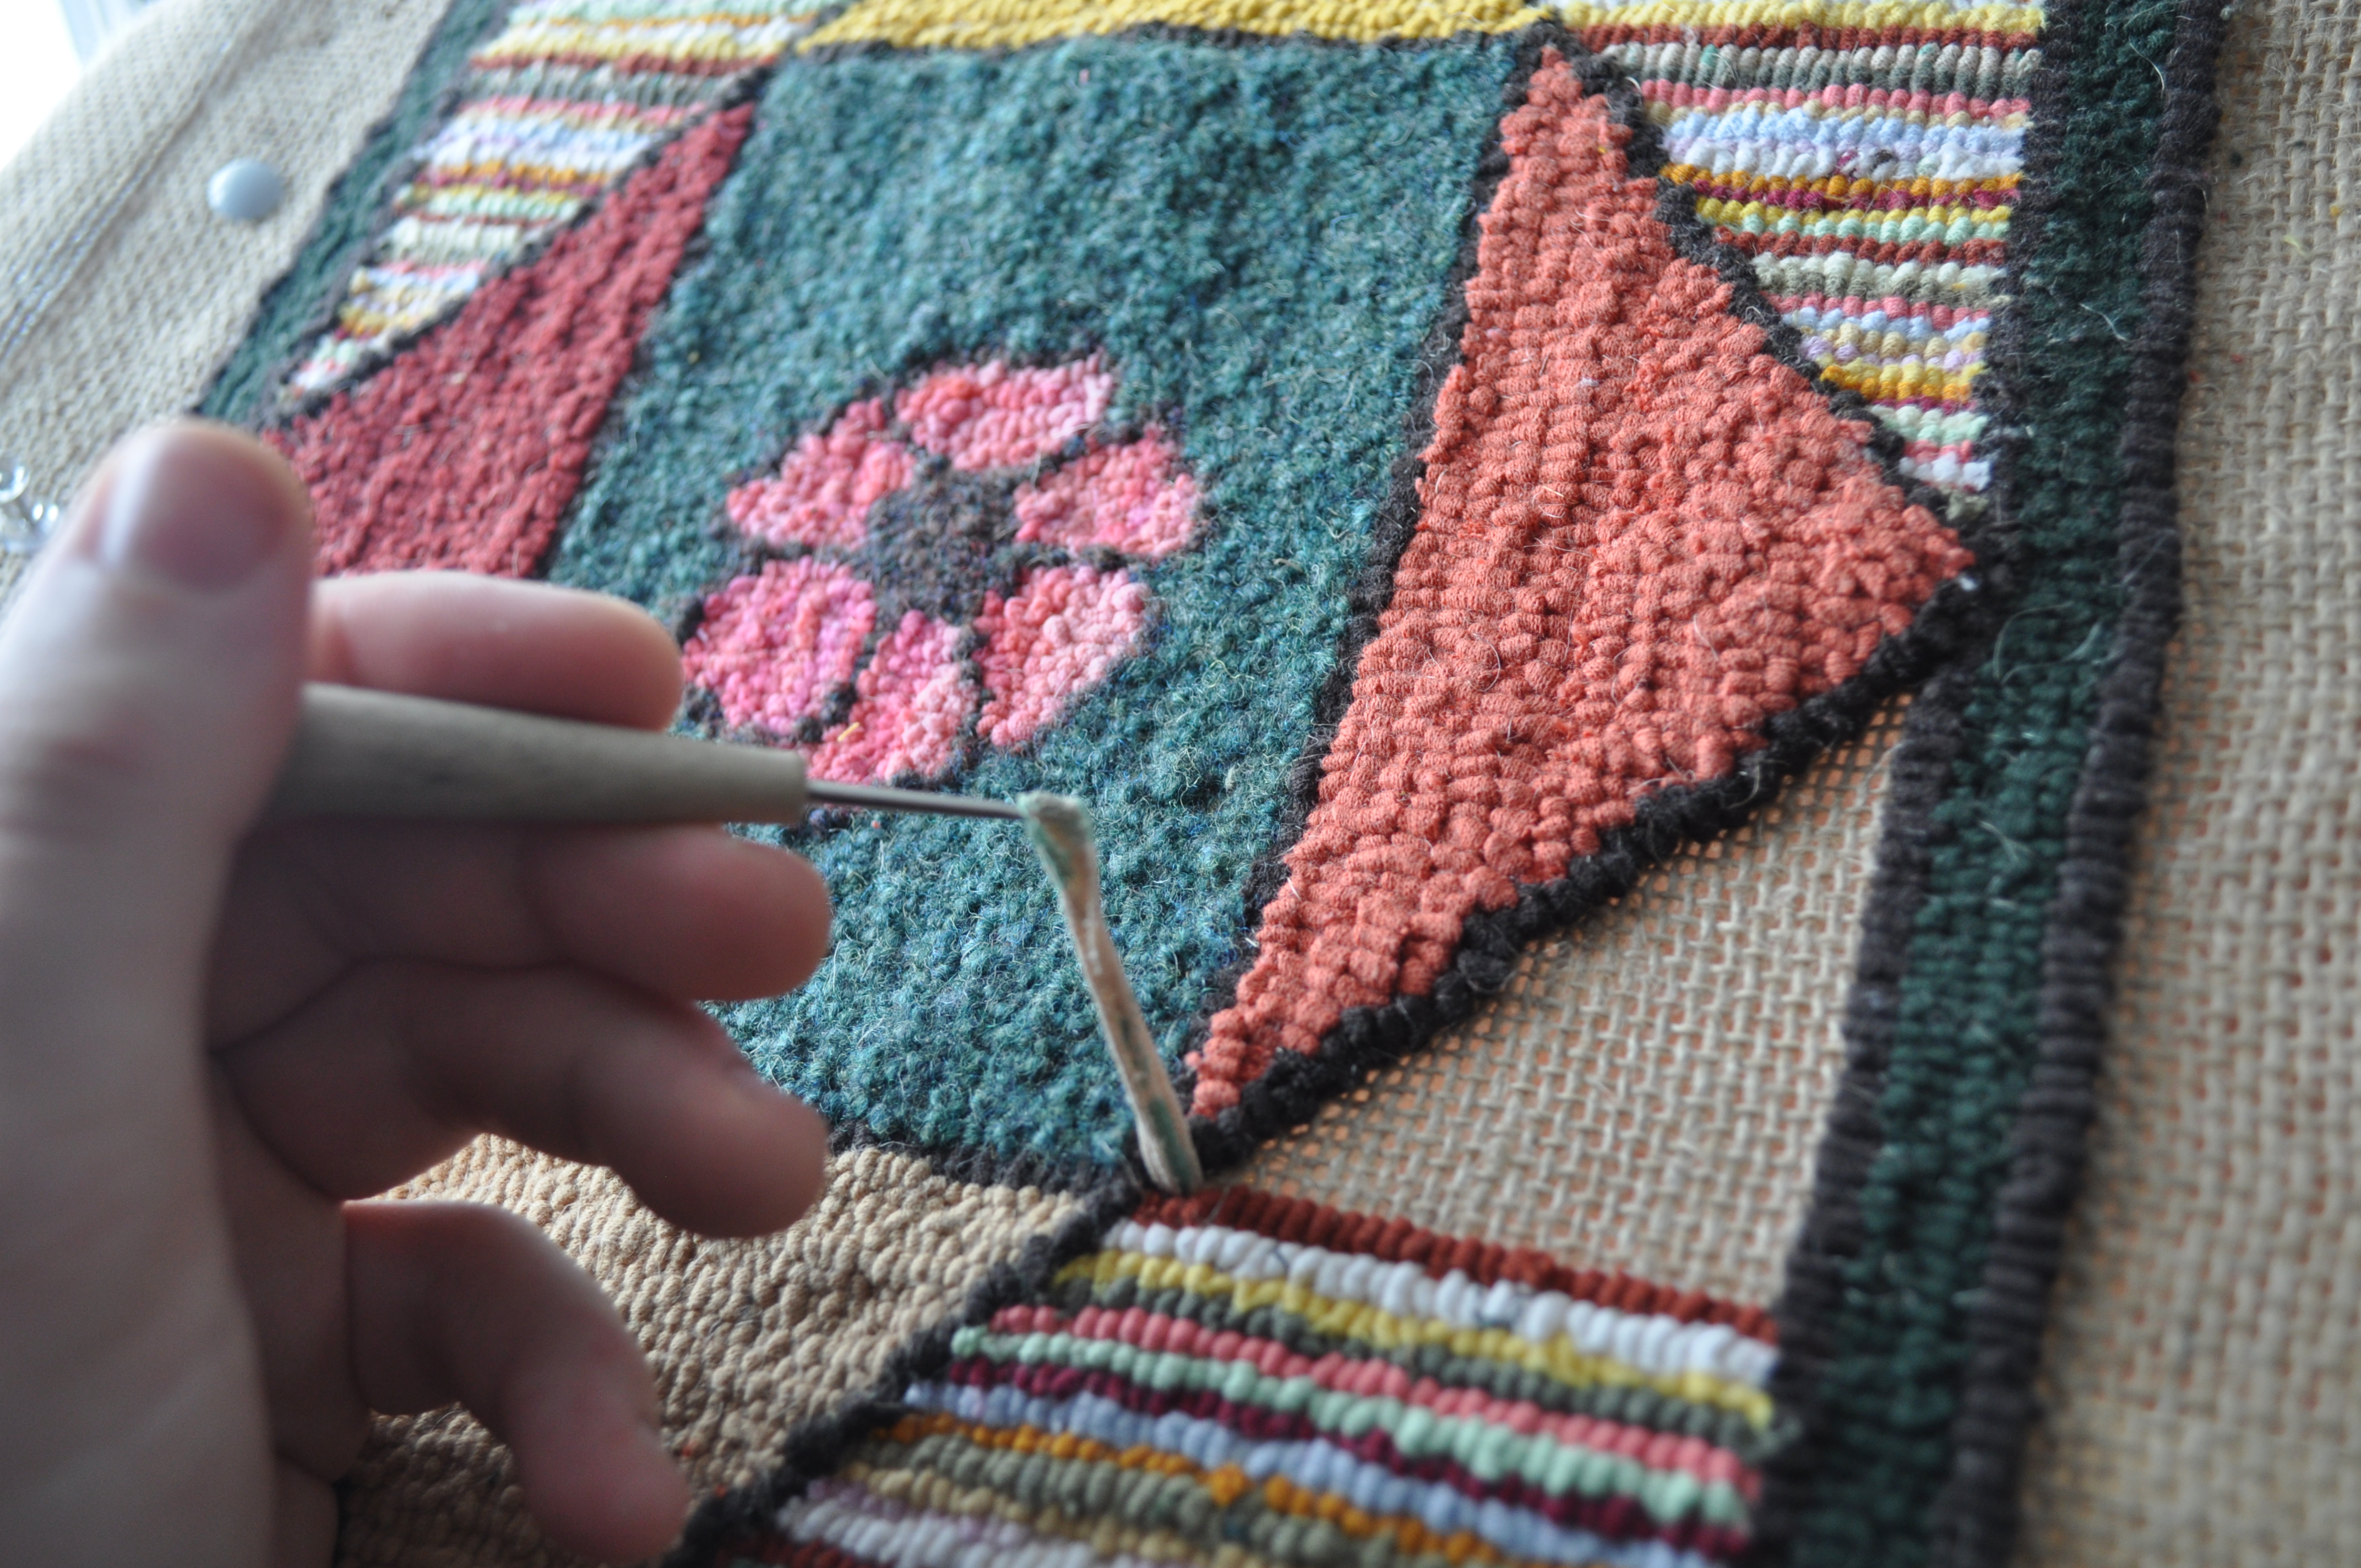 history of rug hooking in newfoundland